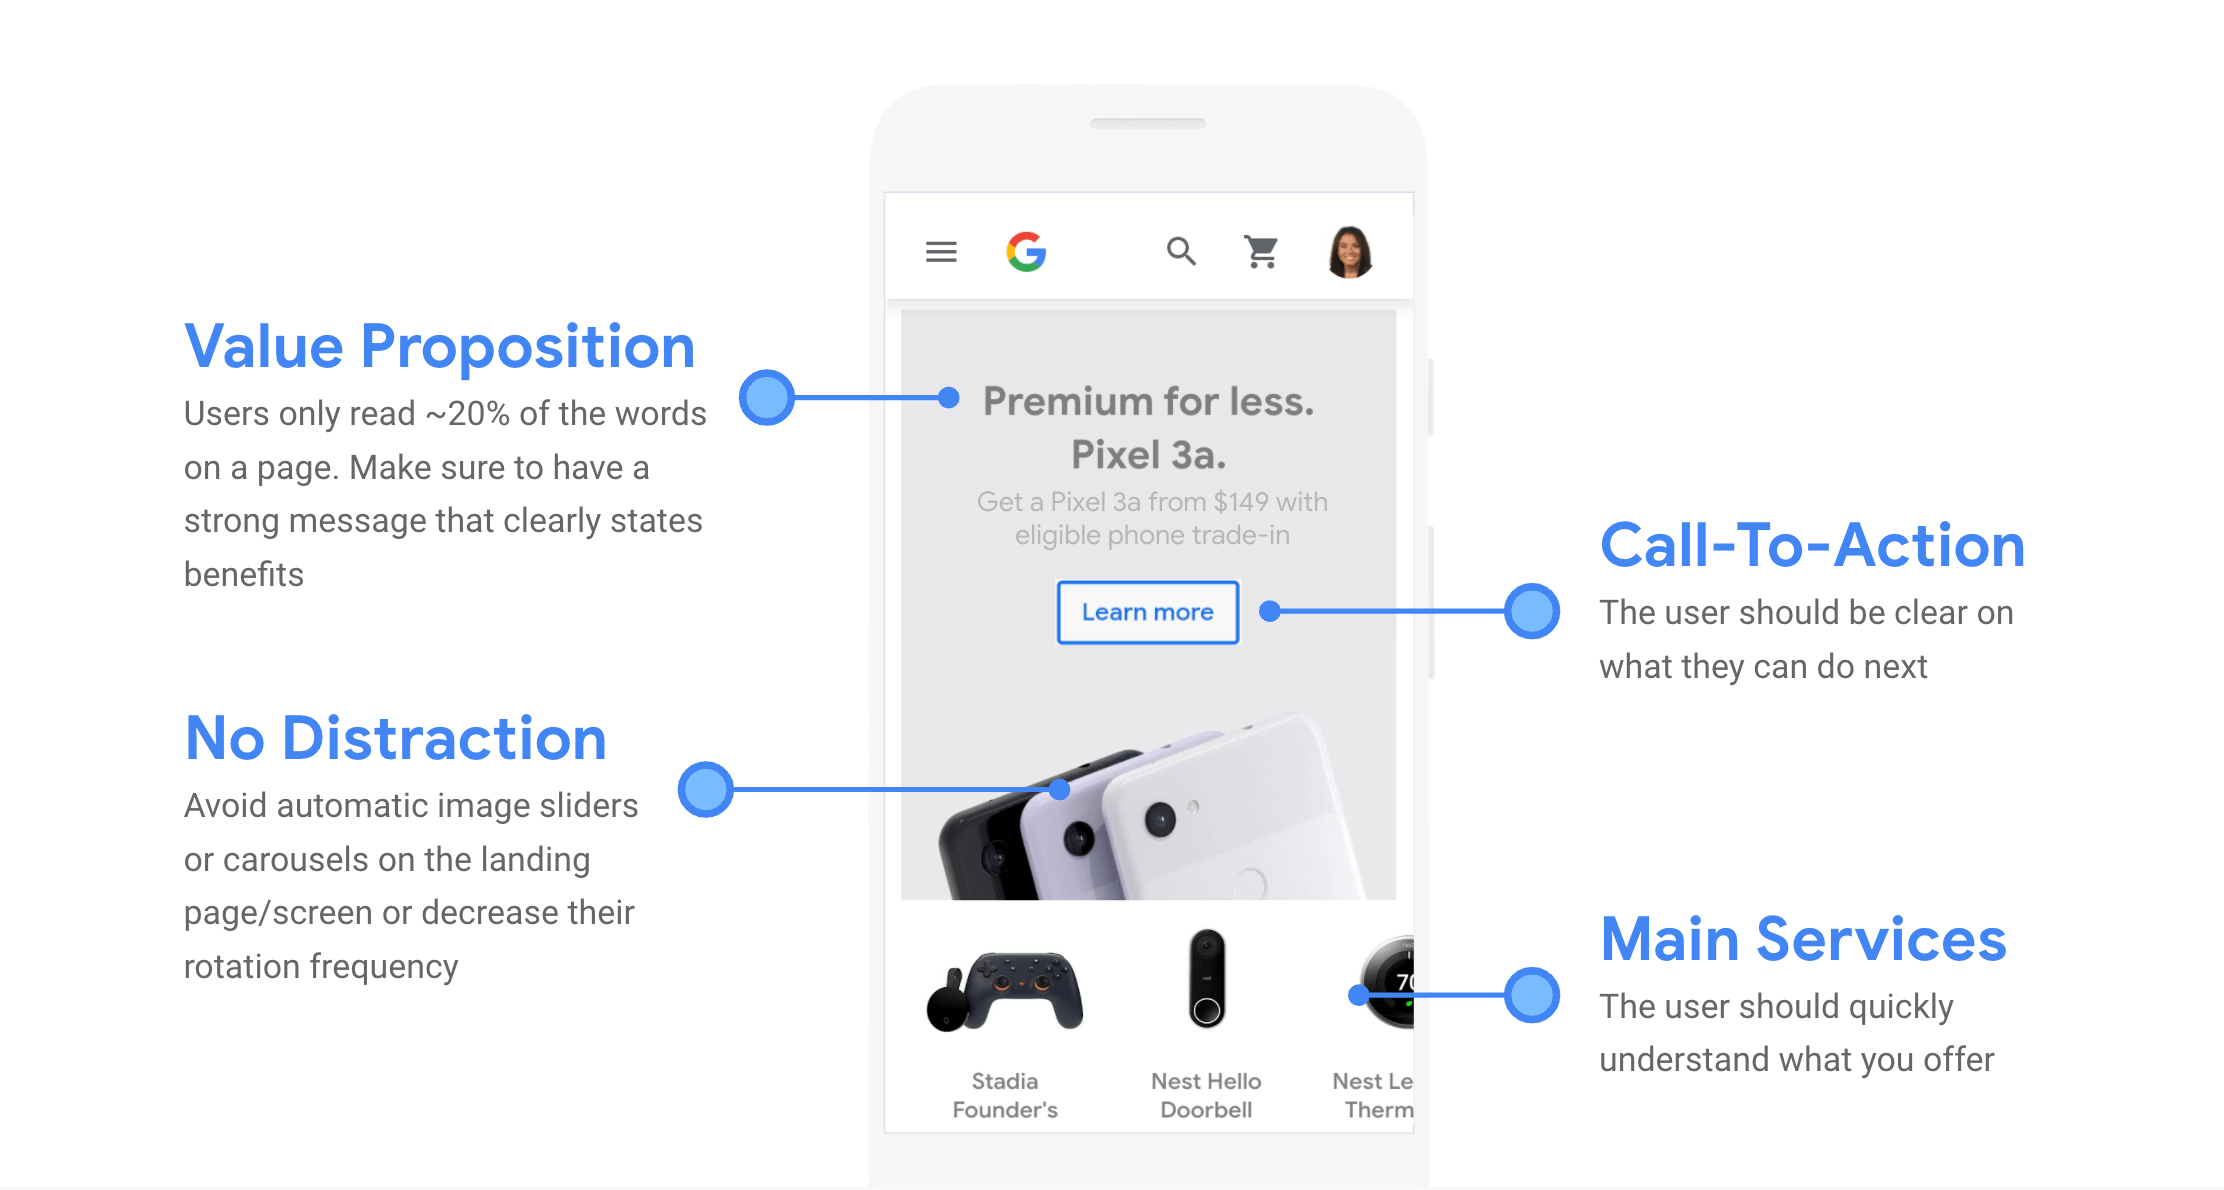 Four key parts of the Pixel phone landing page.(Source: Google)